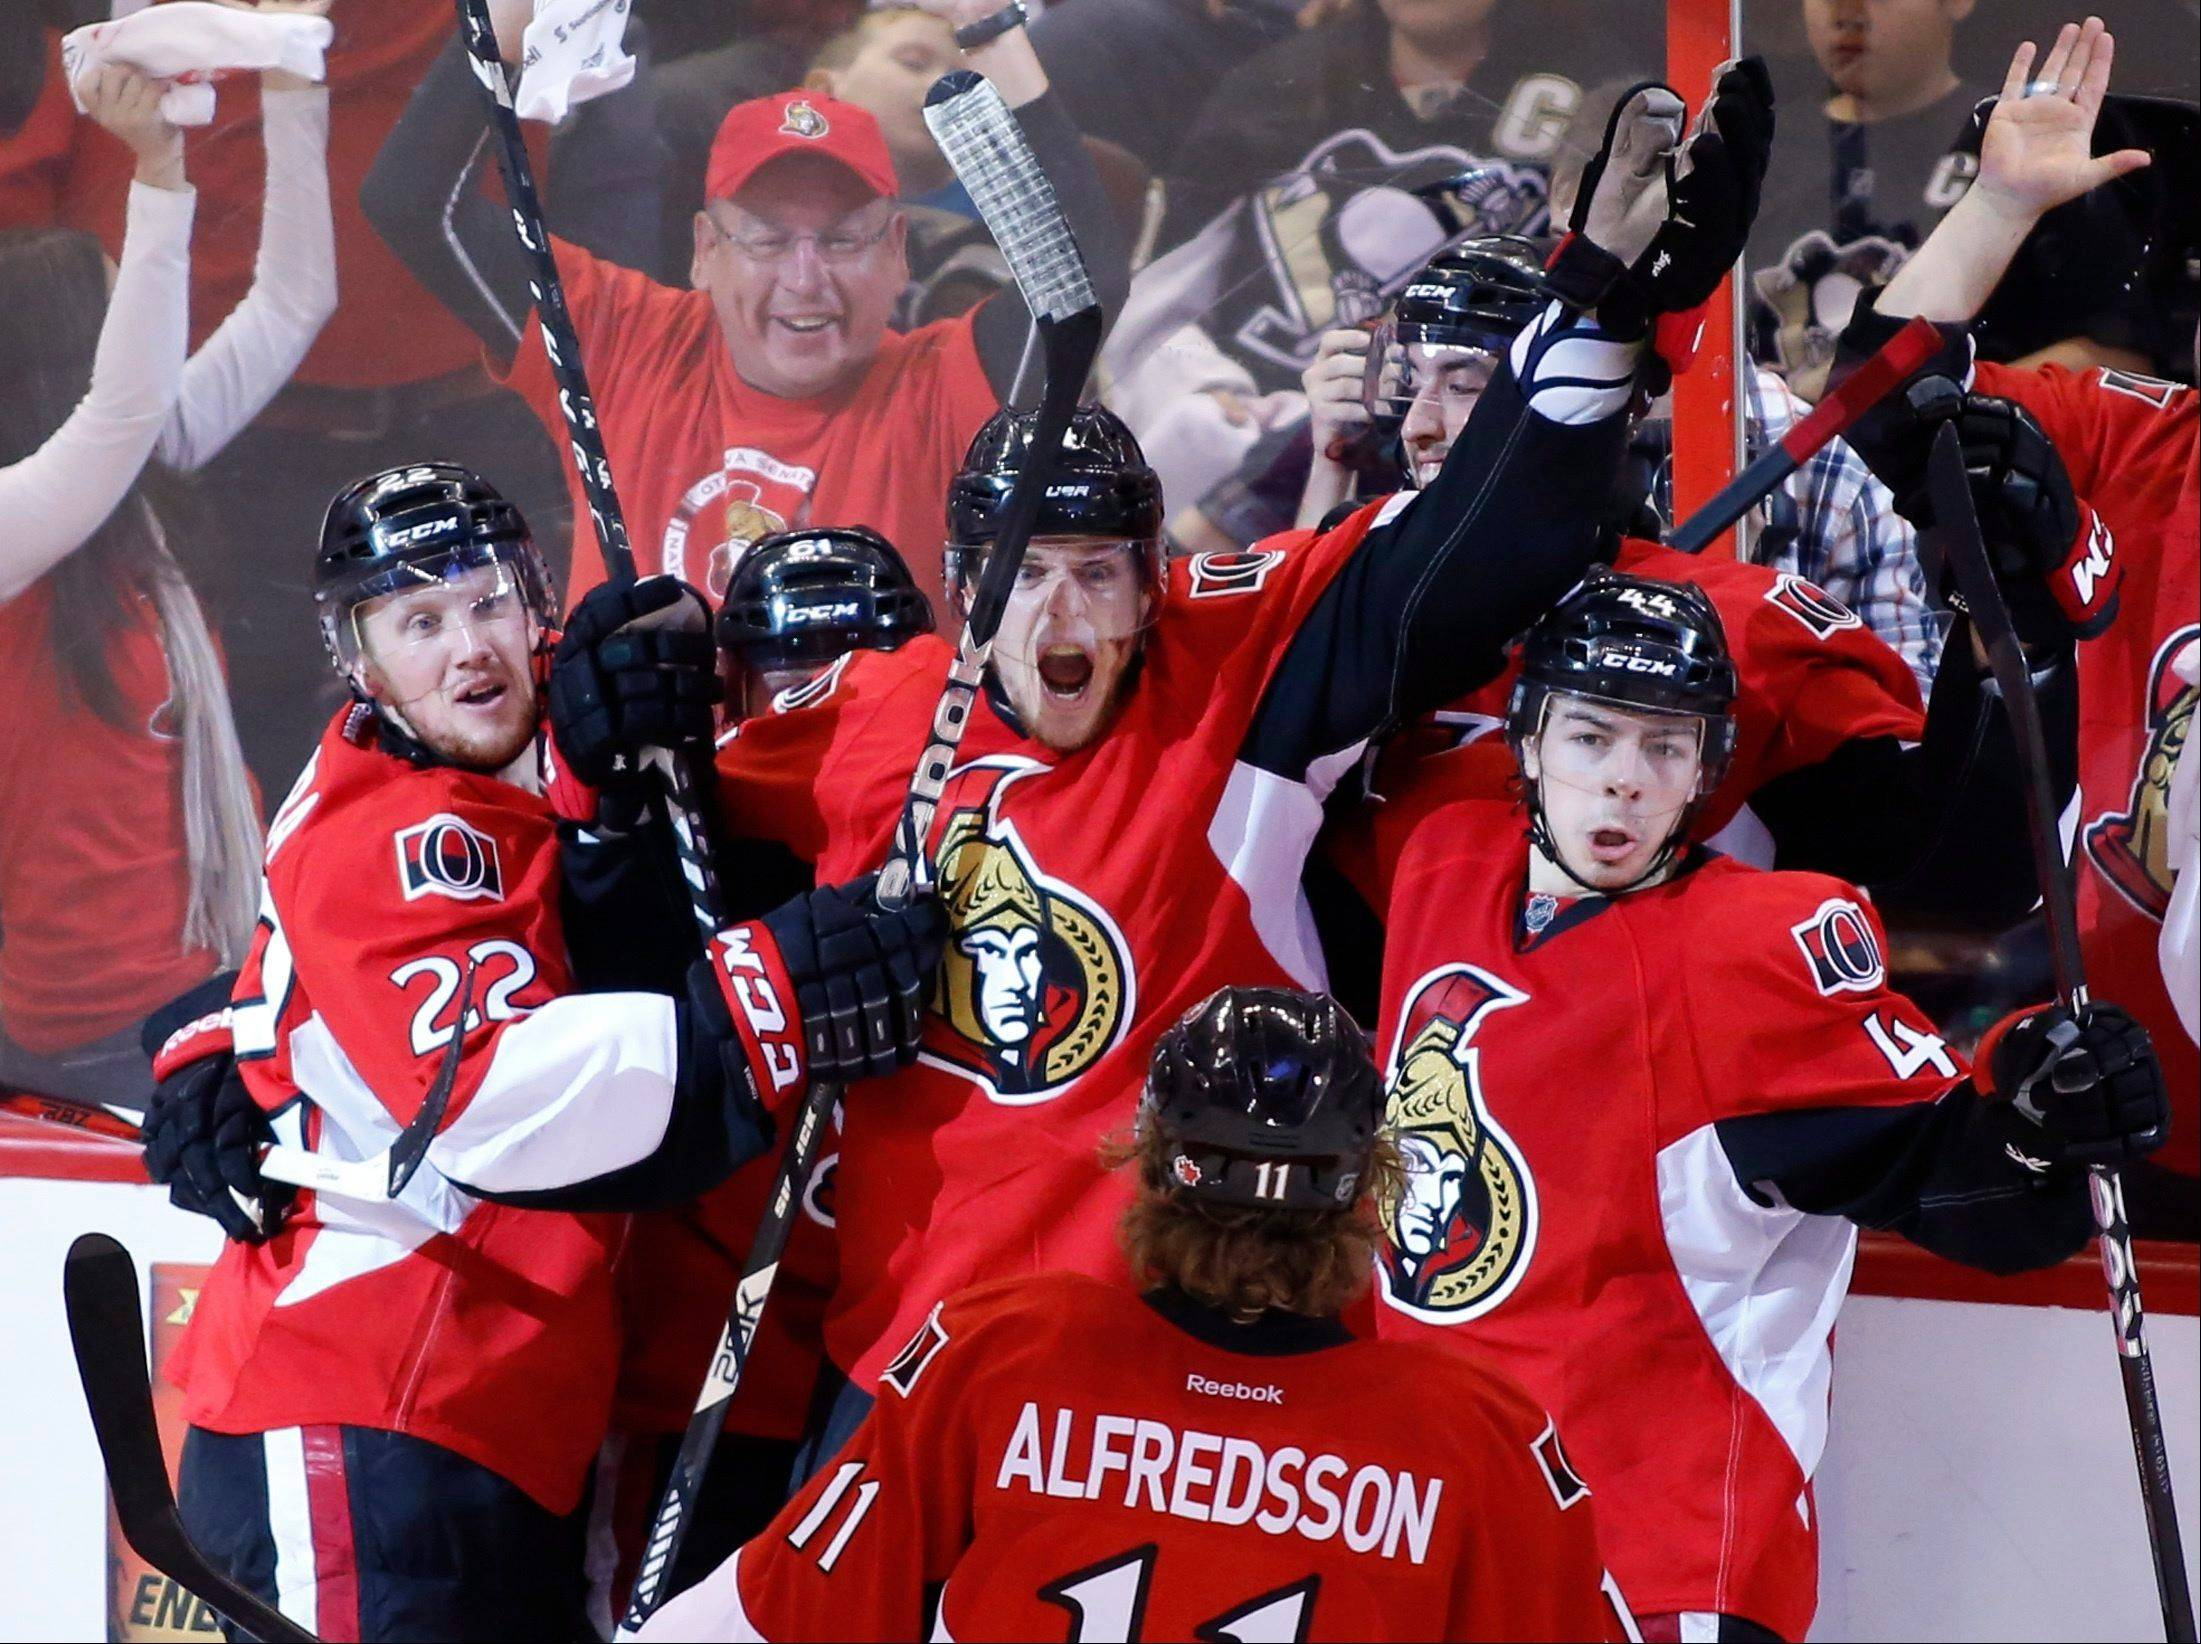 Ottawa Senators� Erik Condra, left, Colin Greening, center, Jean-Gabriel Pageau, right, and Daniel Alfredsson celebrate after Greening scores the winning goal against the Pittsburgh Penguins during the second overtime period of Game 4 of their Stanley Cup Eastern Conference semi-final NHL hockey series at Scotiabank Place in Ottawa on Sunday, May 19, 2013.